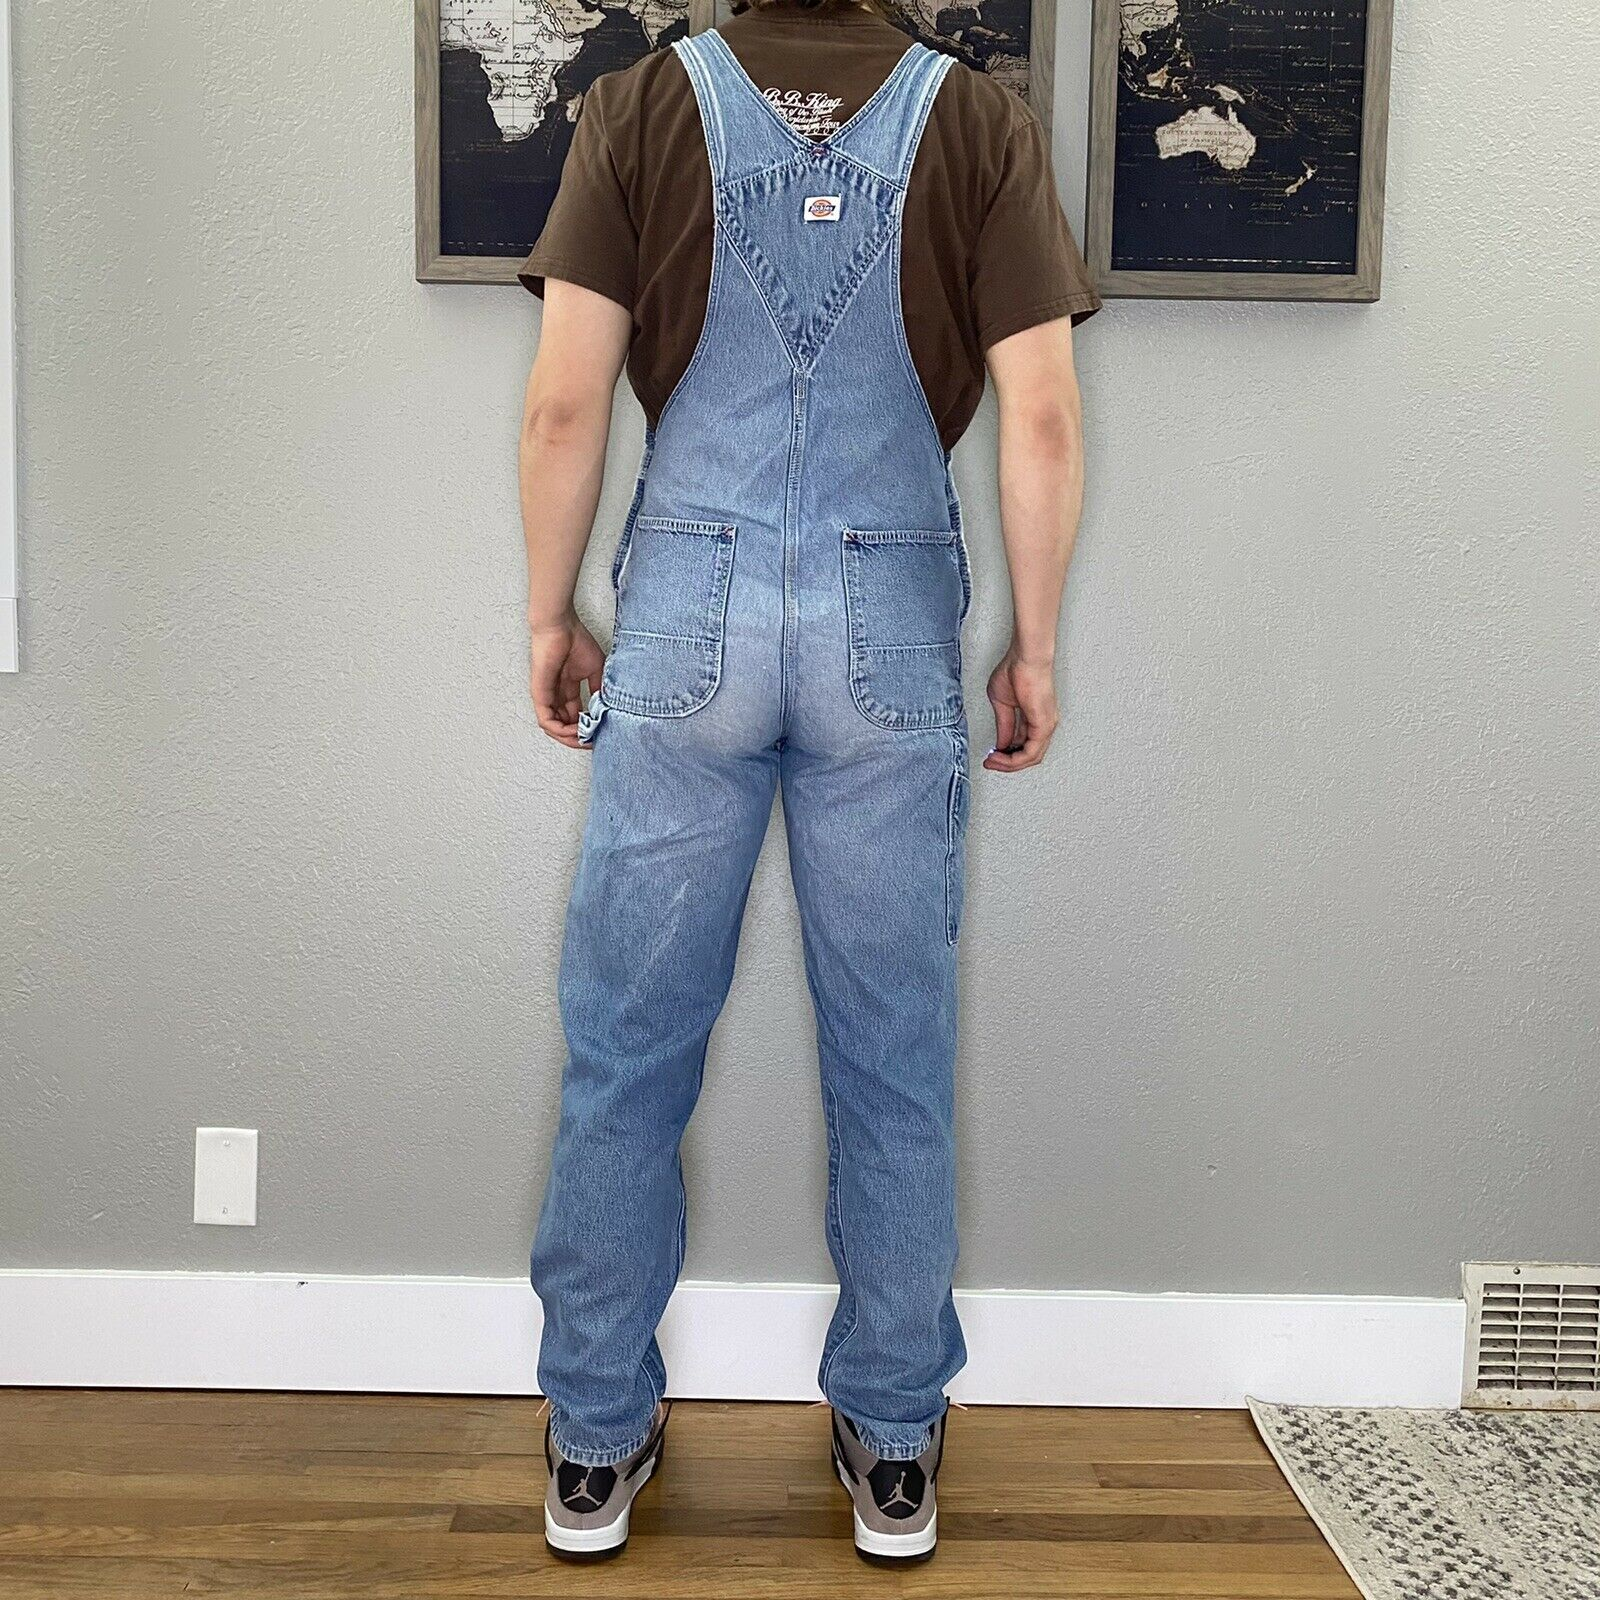 mens 34x32 light wash dickies overalls - image 4